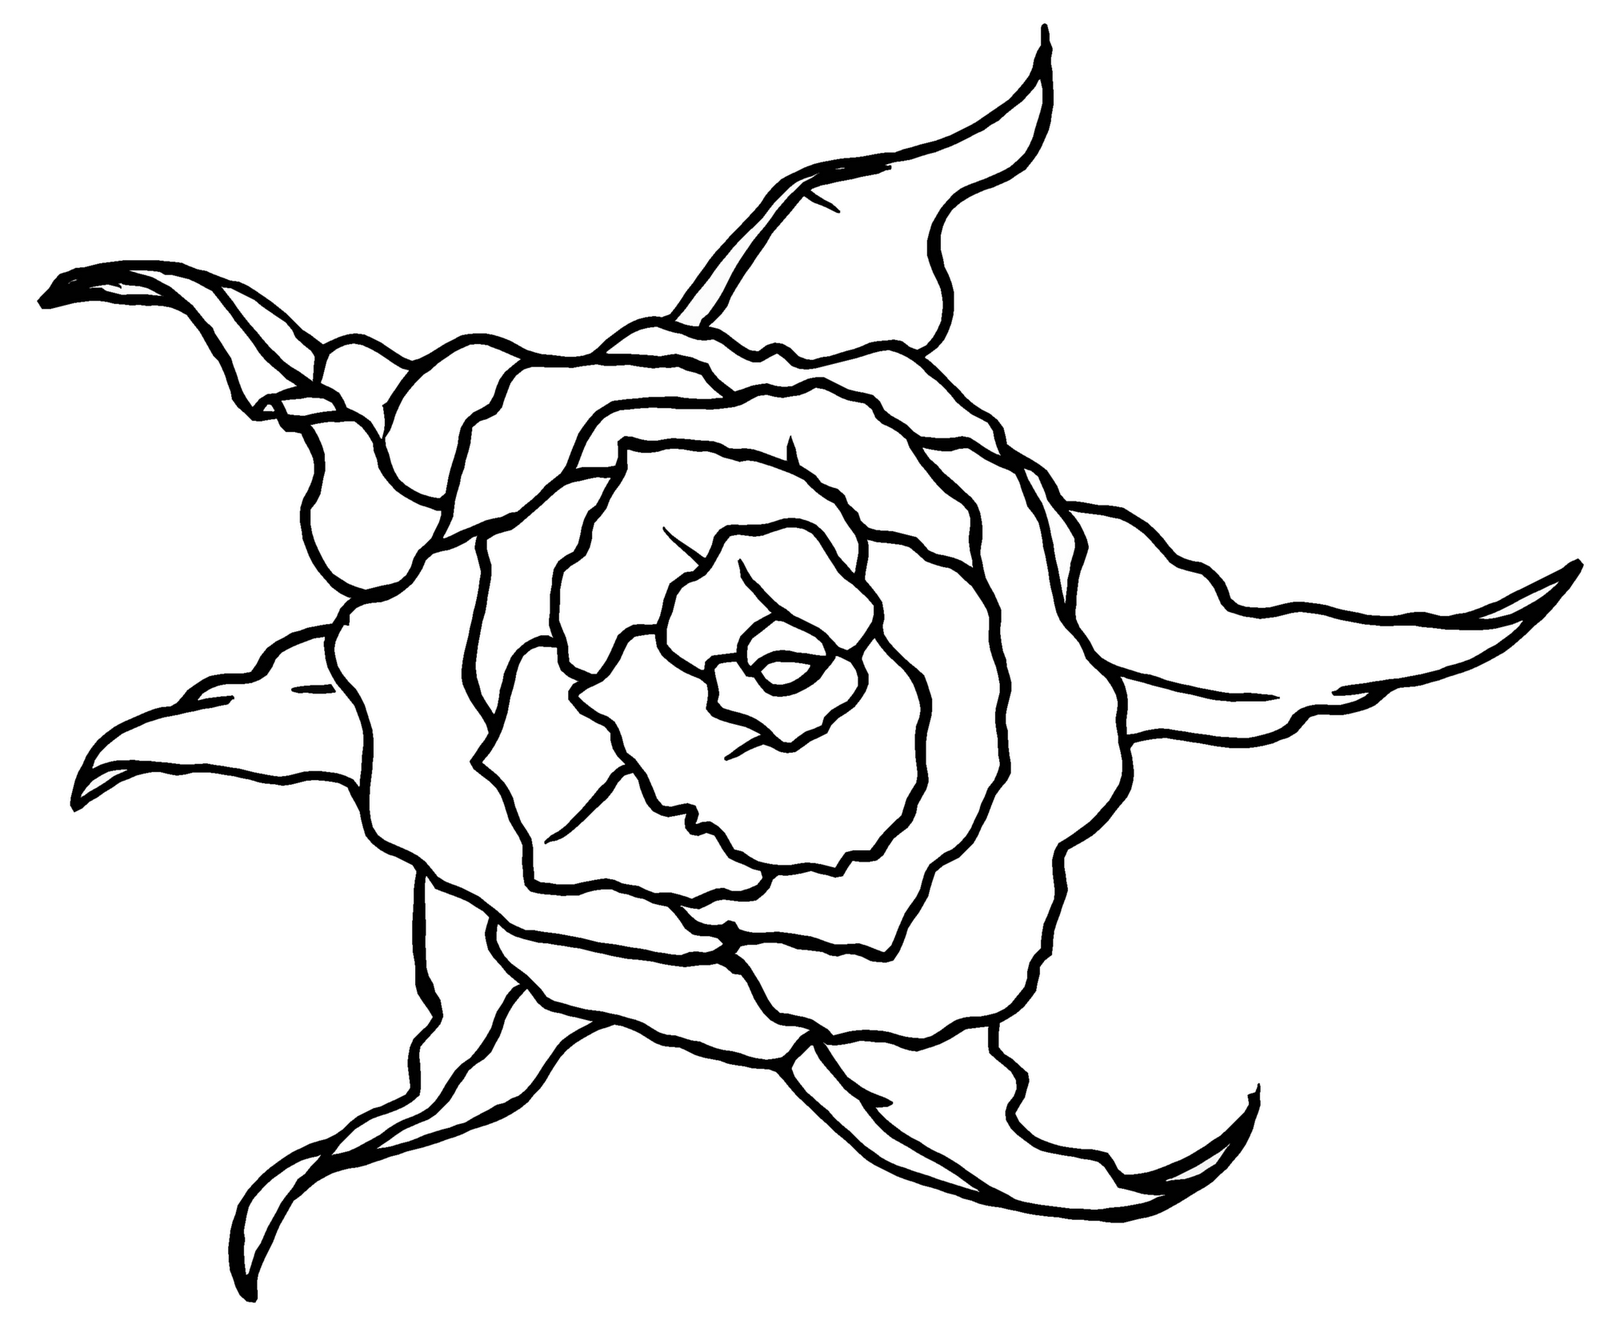 Drawing Line Qt : Rose line drawings clipart best